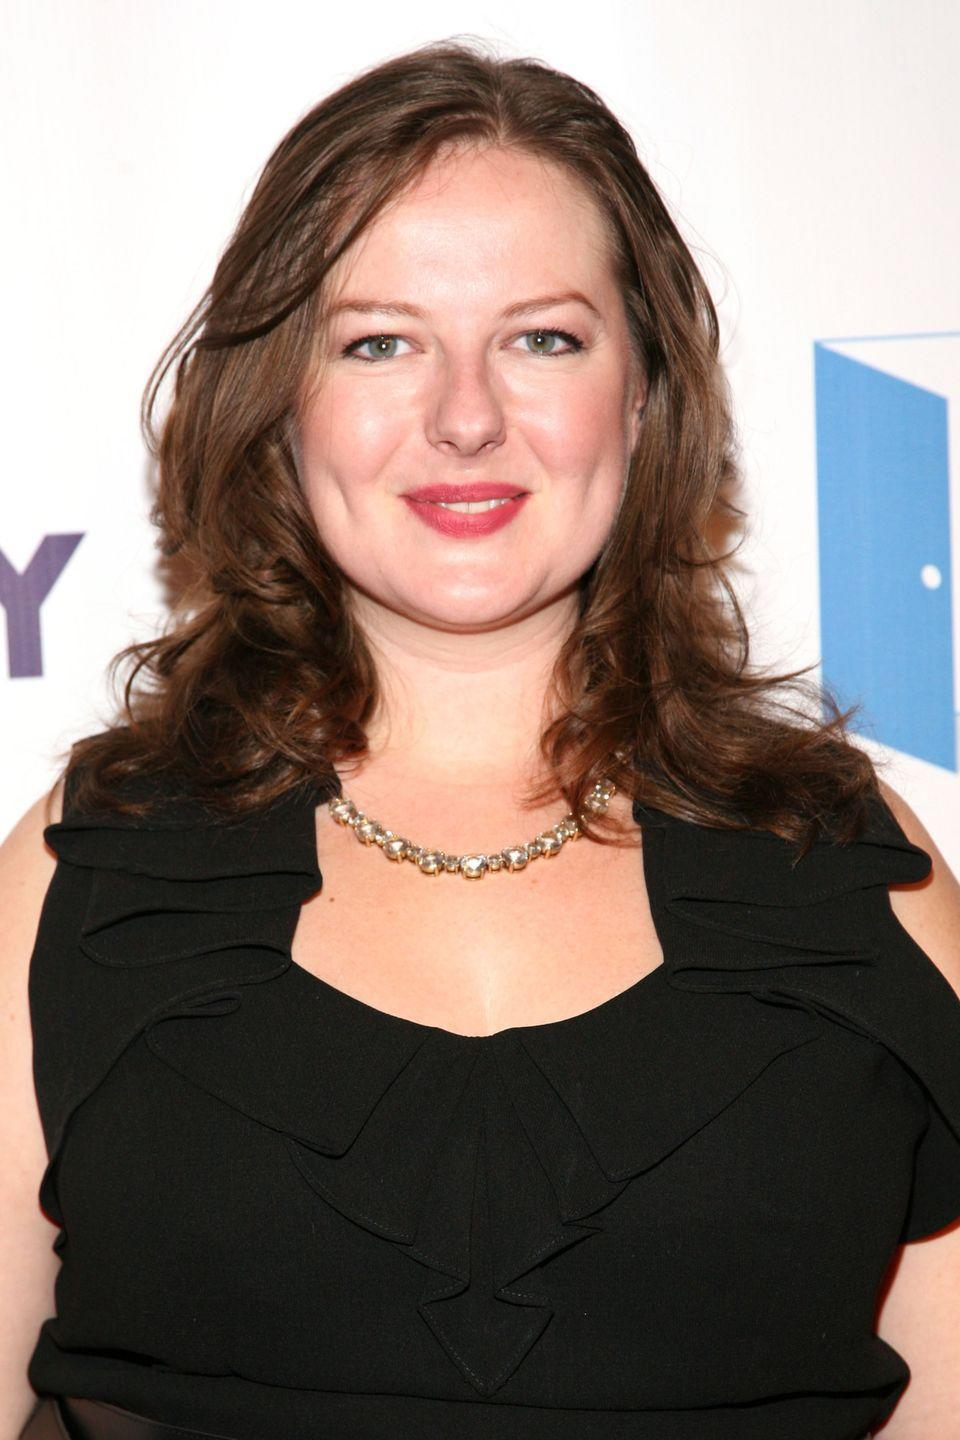 <p>Zuzanna is best known for playing the Waldorf family's biggest supporter, Dorota. But before that, she also held roles on <em>The Sopranos </em>and <em>Law & Order</em>. That said, I want all of you to be honest. Who thought Dorota miiiight've been Gossip Girl? *slowly raises hand*</p>